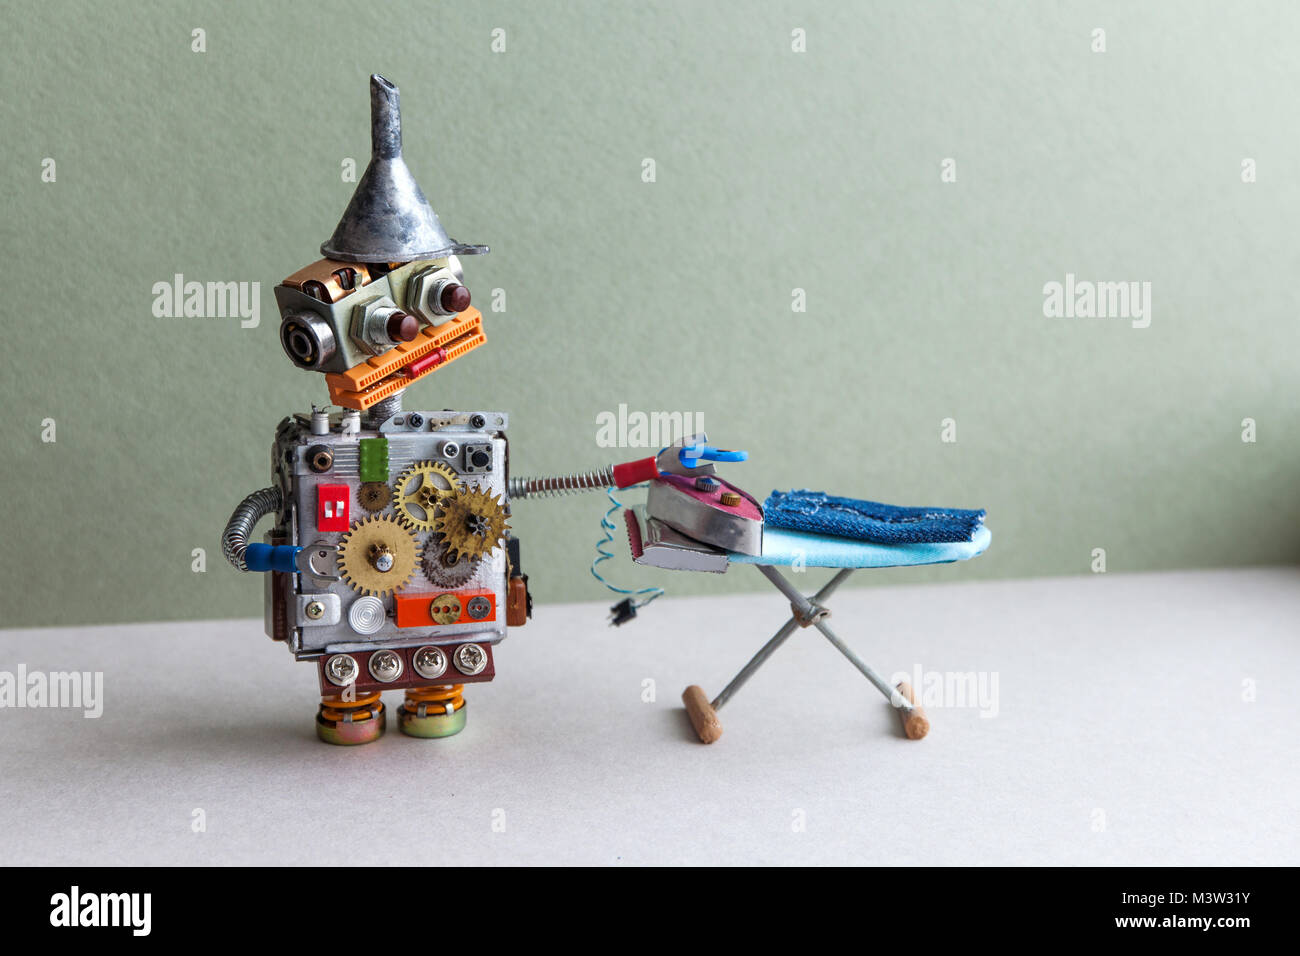 Robot housework assistant ironing blue jeans with iron on the board. green wall gray floor room interior. Creative - Stock Image